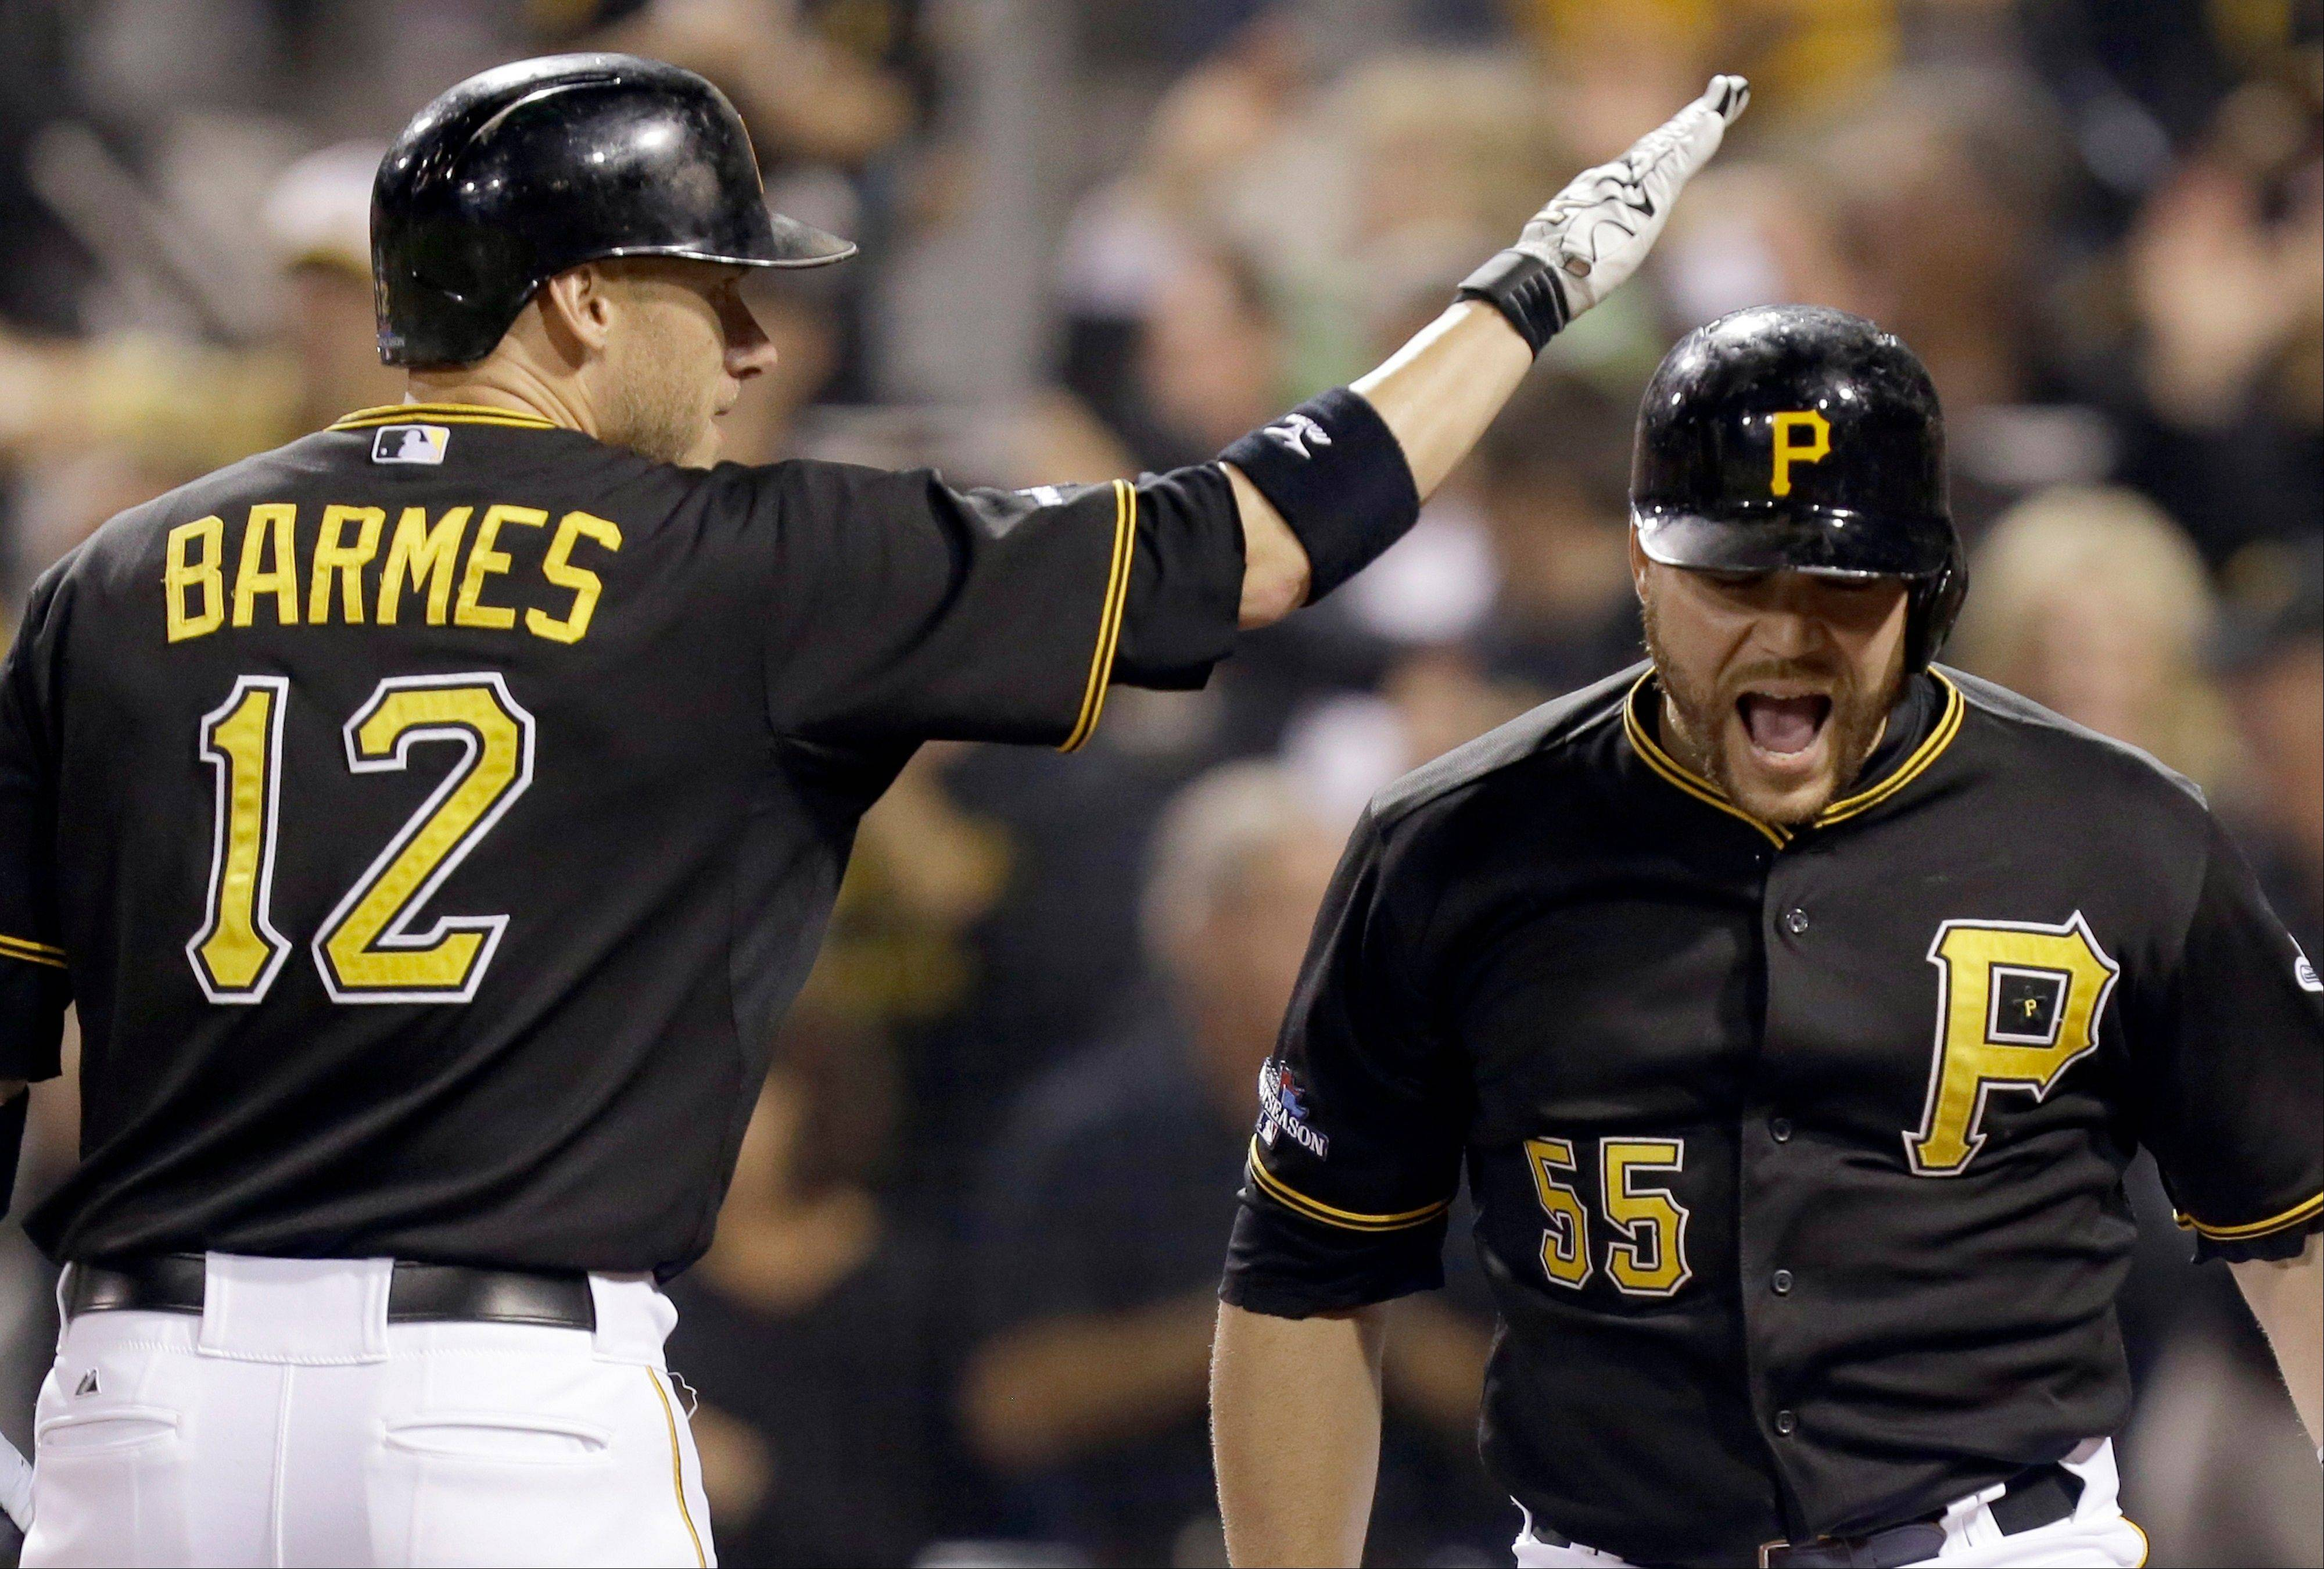 Pittsburgh Pirates' Russell Martin (55) is greeted by on-deck batter Clint Barmes (12) after hitting a home run in the second inning of the NL wild-card playoff baseball game against the Cincinnati Reds on Tuesday, Oct. 1, 2013, in Pittsburgh. (AP Photo/Gene J. Puskar)